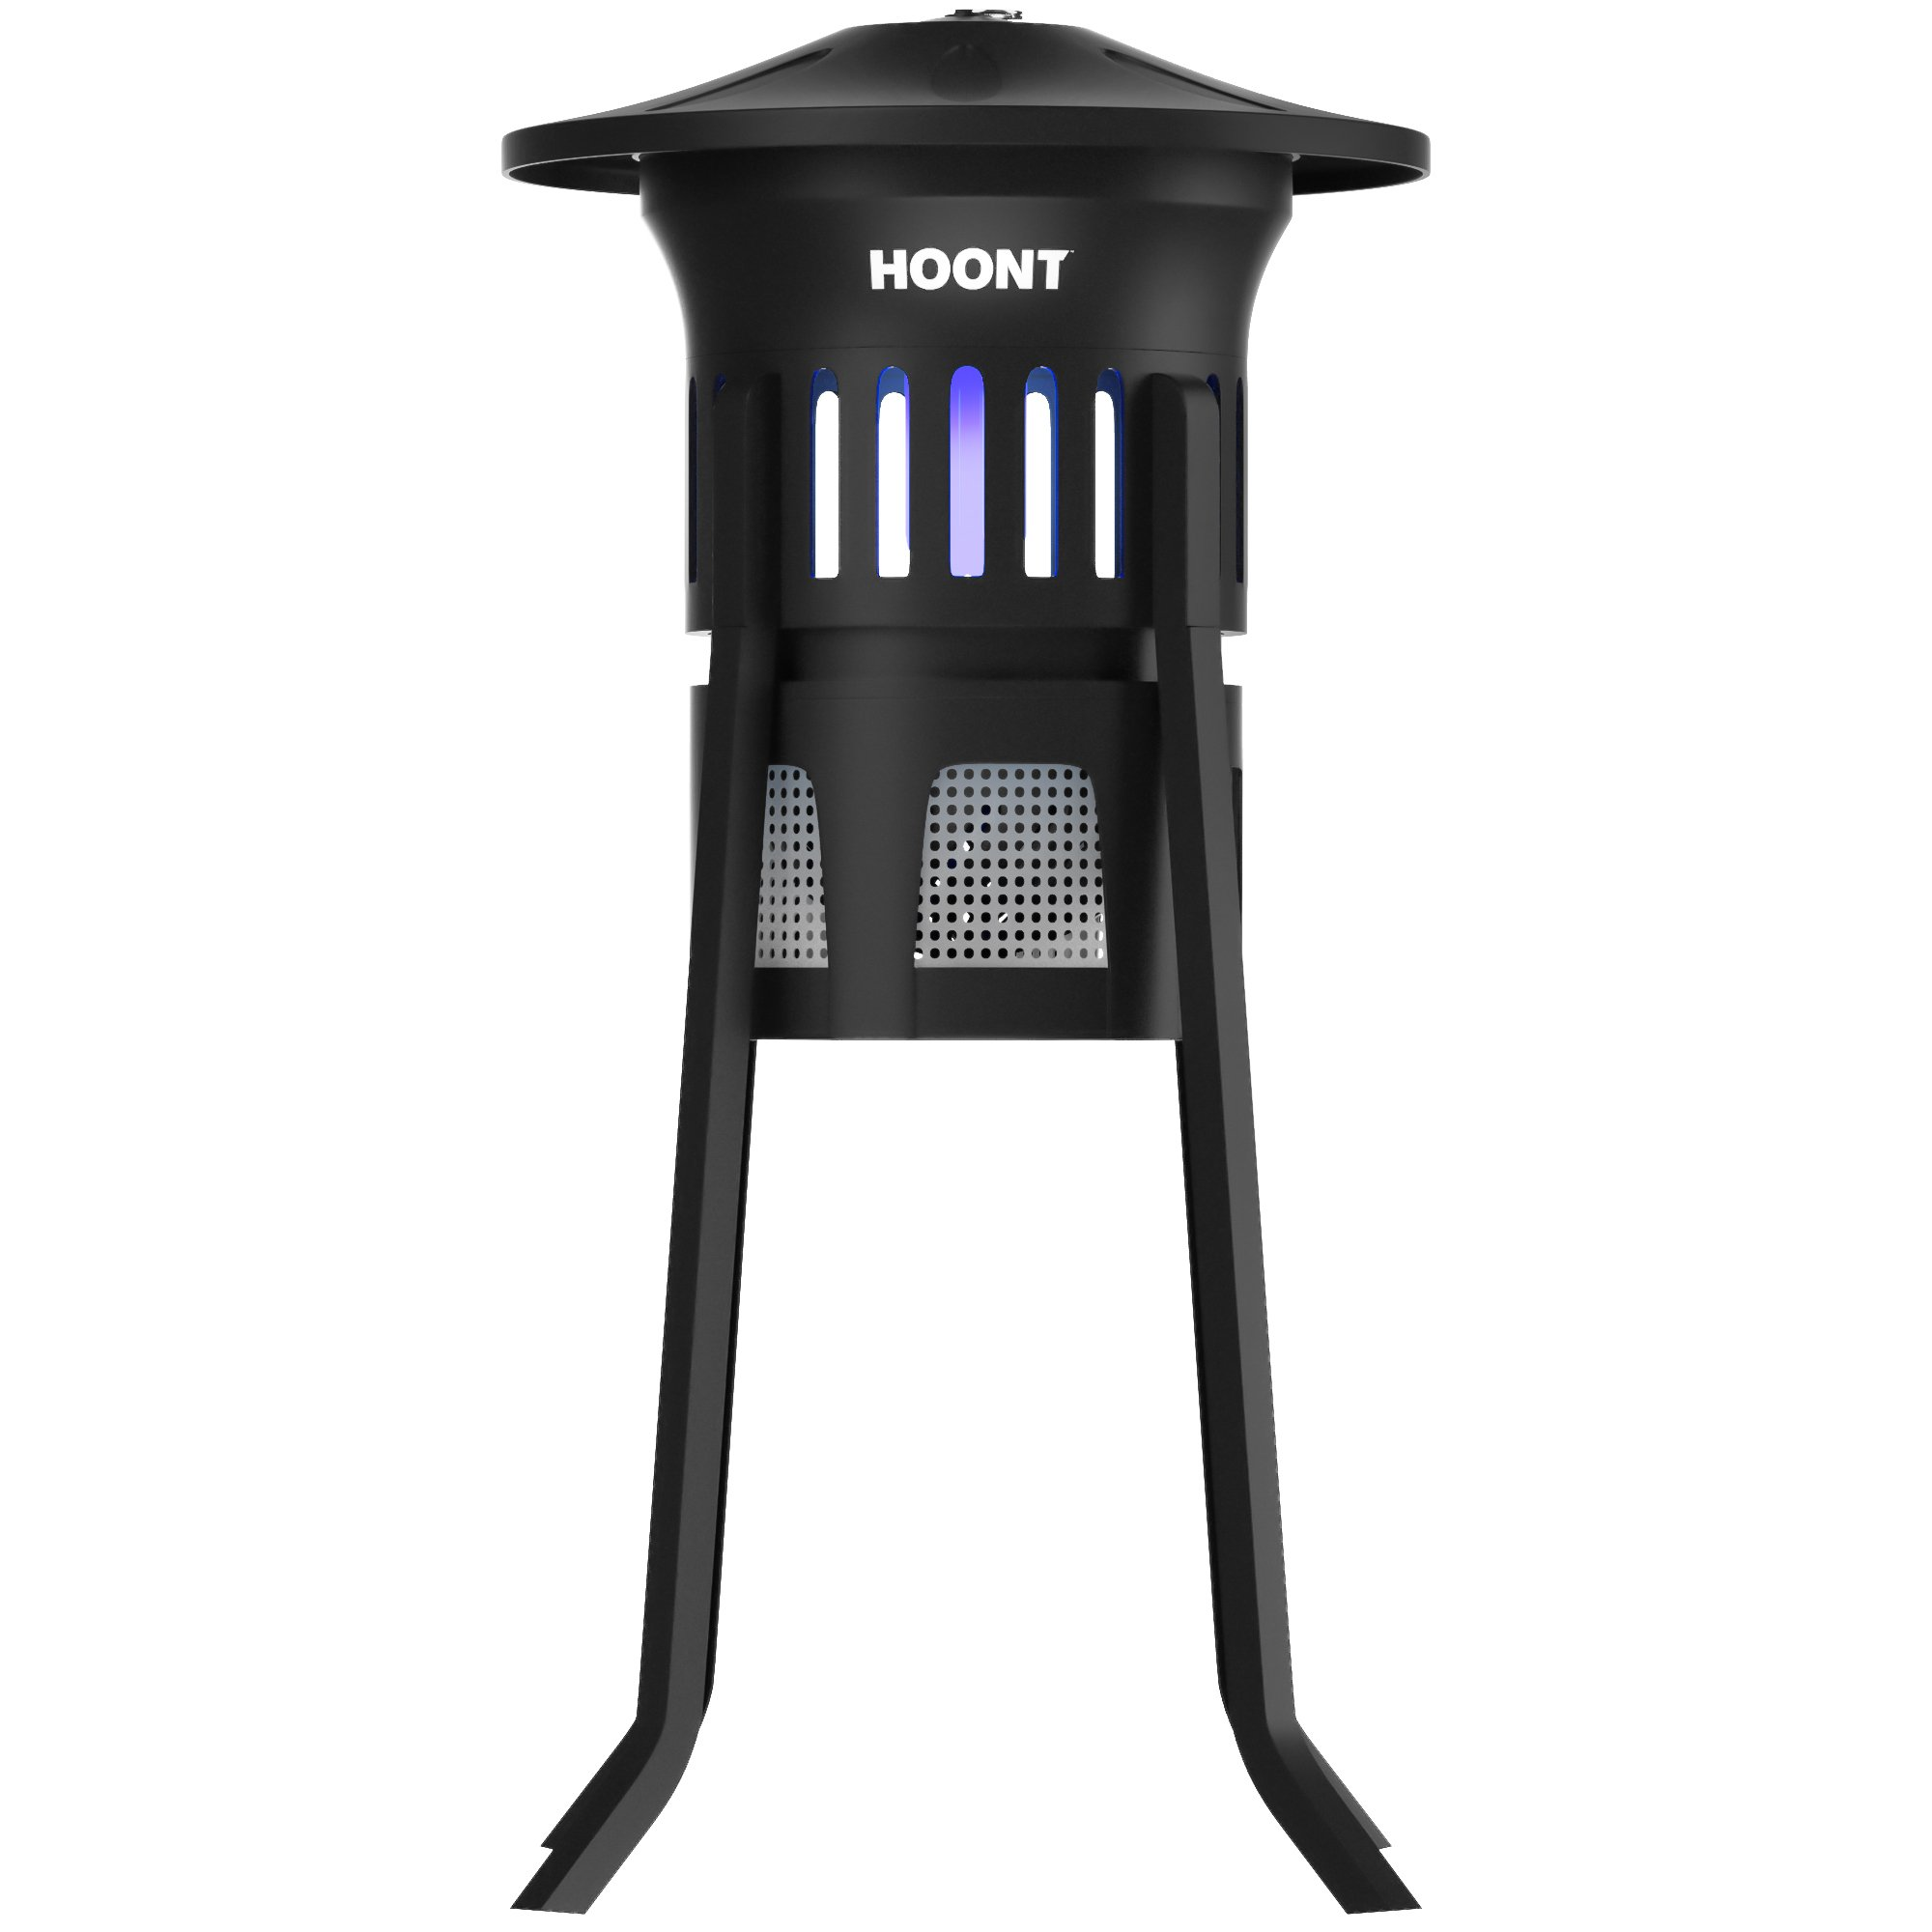 Hoont Mosquito Killer and Gnat Fly Trap Killer, Indoor & Outdoor Mosquito Trap Control with Stand - Bright UV Light and Fan/Exterminate Mosquitoes, Wasps, Etc. – Perfect for Patio, Gardens, etc. by Hoont